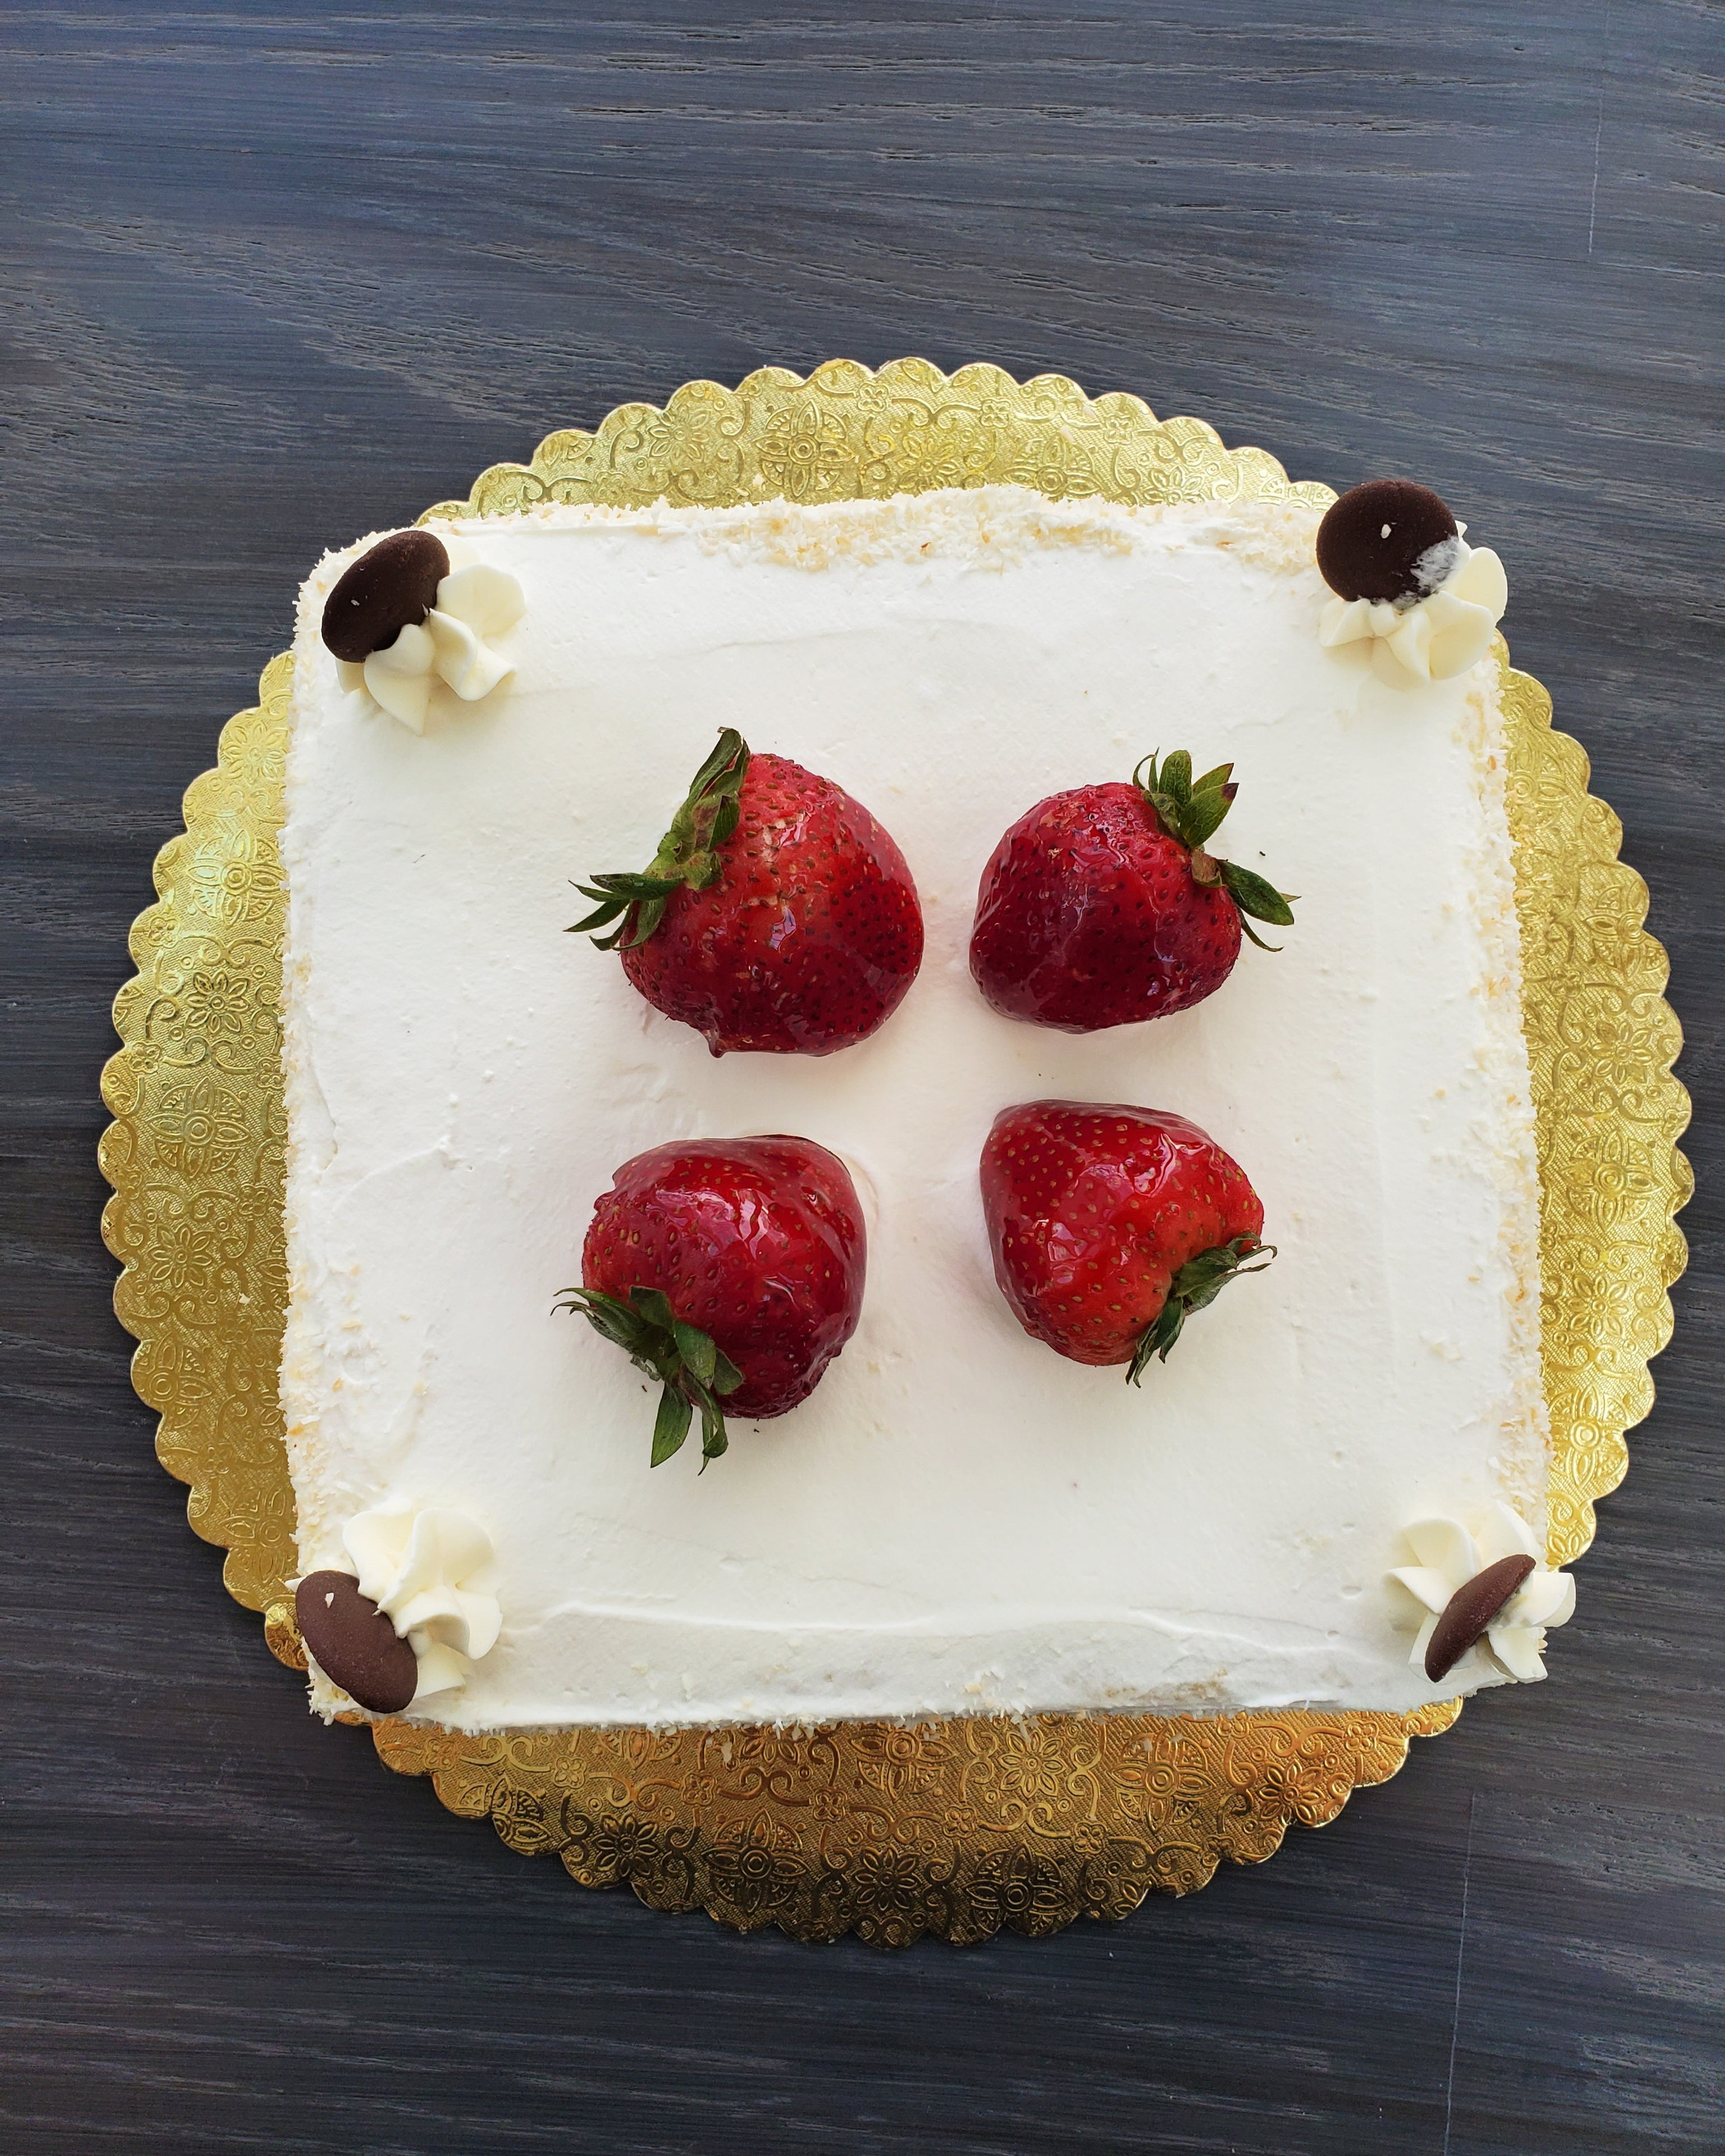 STRAWBERRY FRASIER - White sponge cake filled with fresh strawberries and coconut mousse